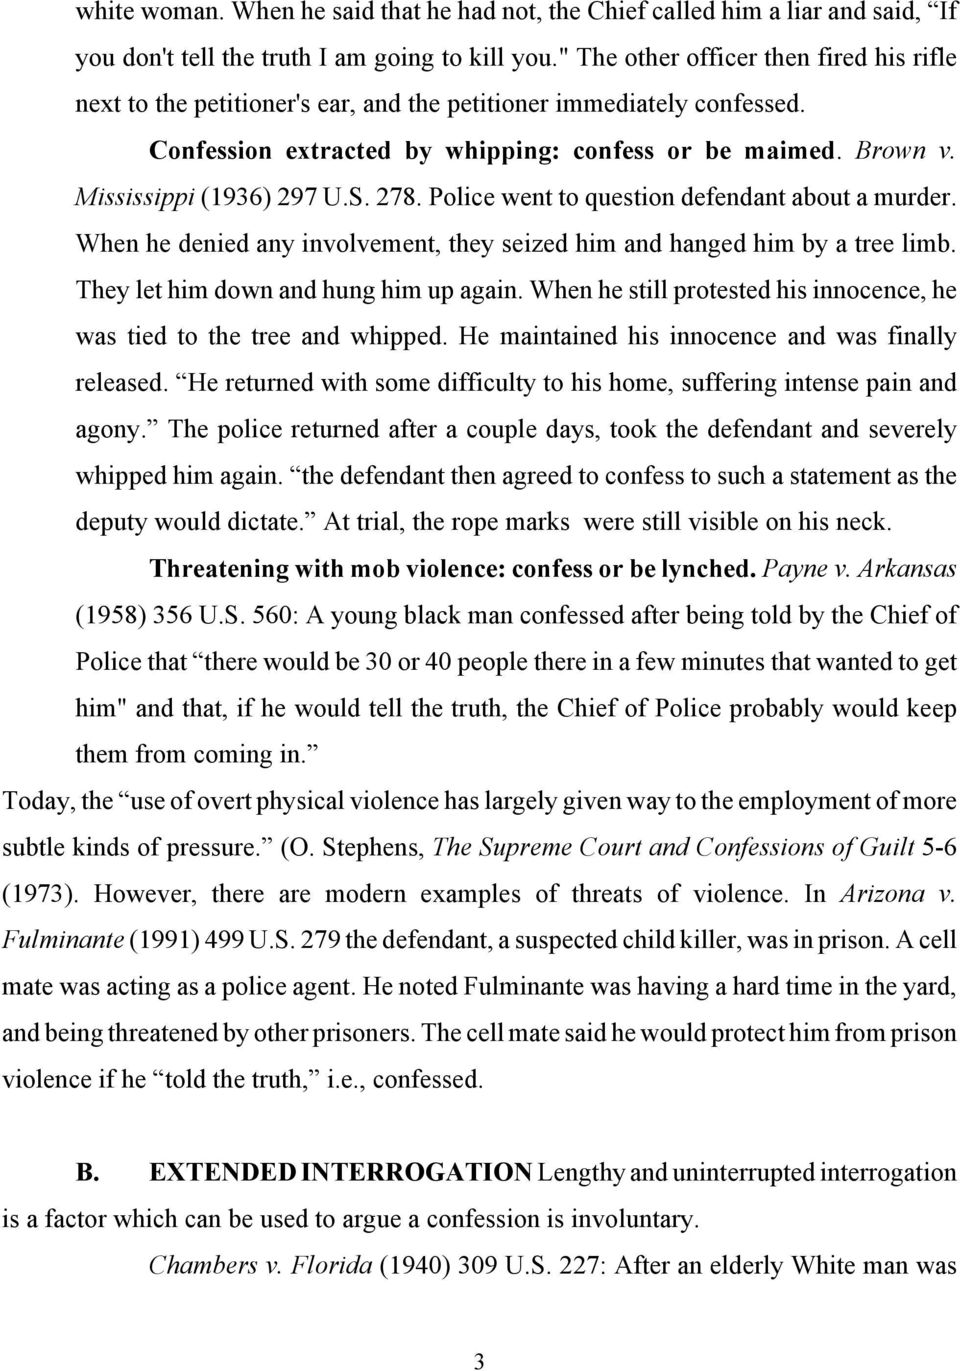 Mississippi (1936) 297 U.S. 278. Police went to question defendant about a murder. When he denied any involvement, they seized him and hanged him by a tree limb.